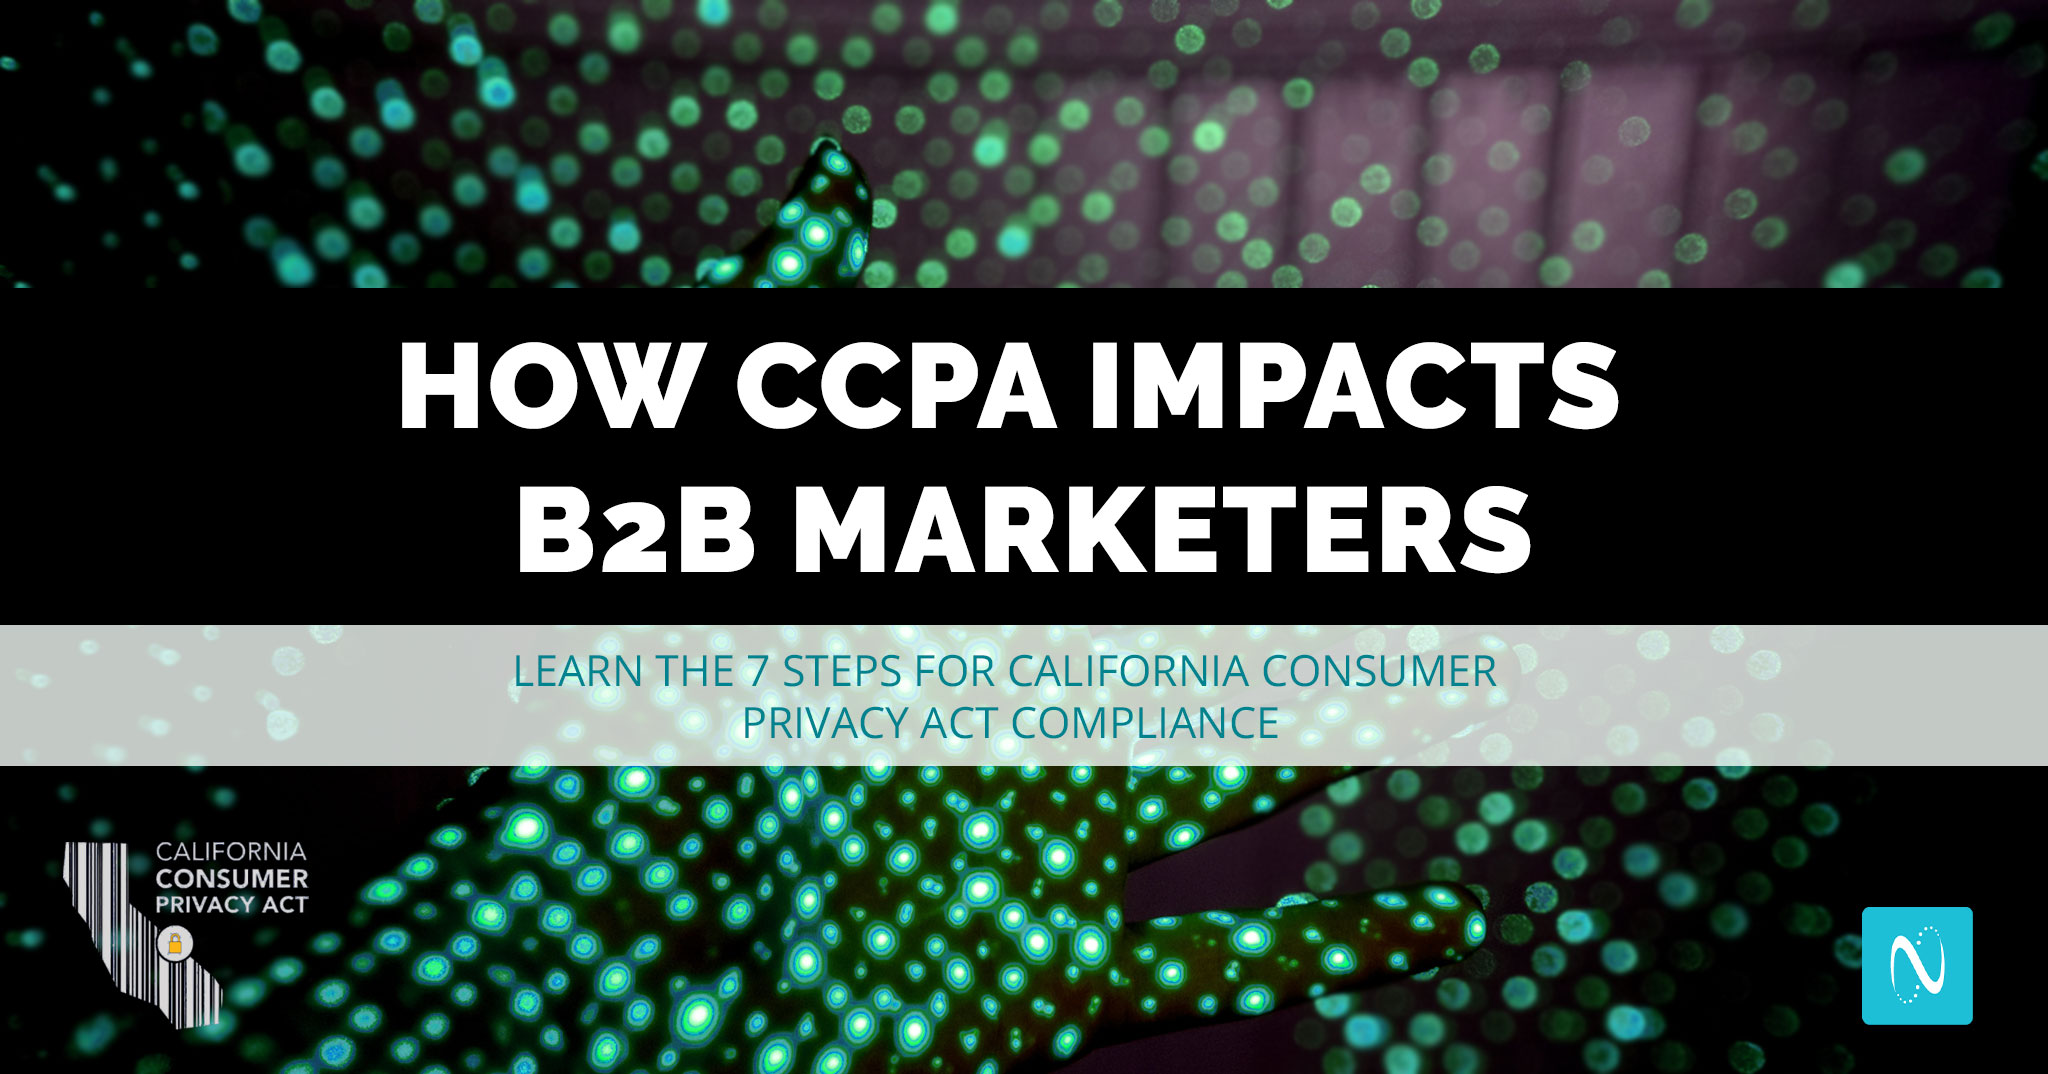 CCPA could impact your B2B business. Learn how and take these 7 steps to become compliant.